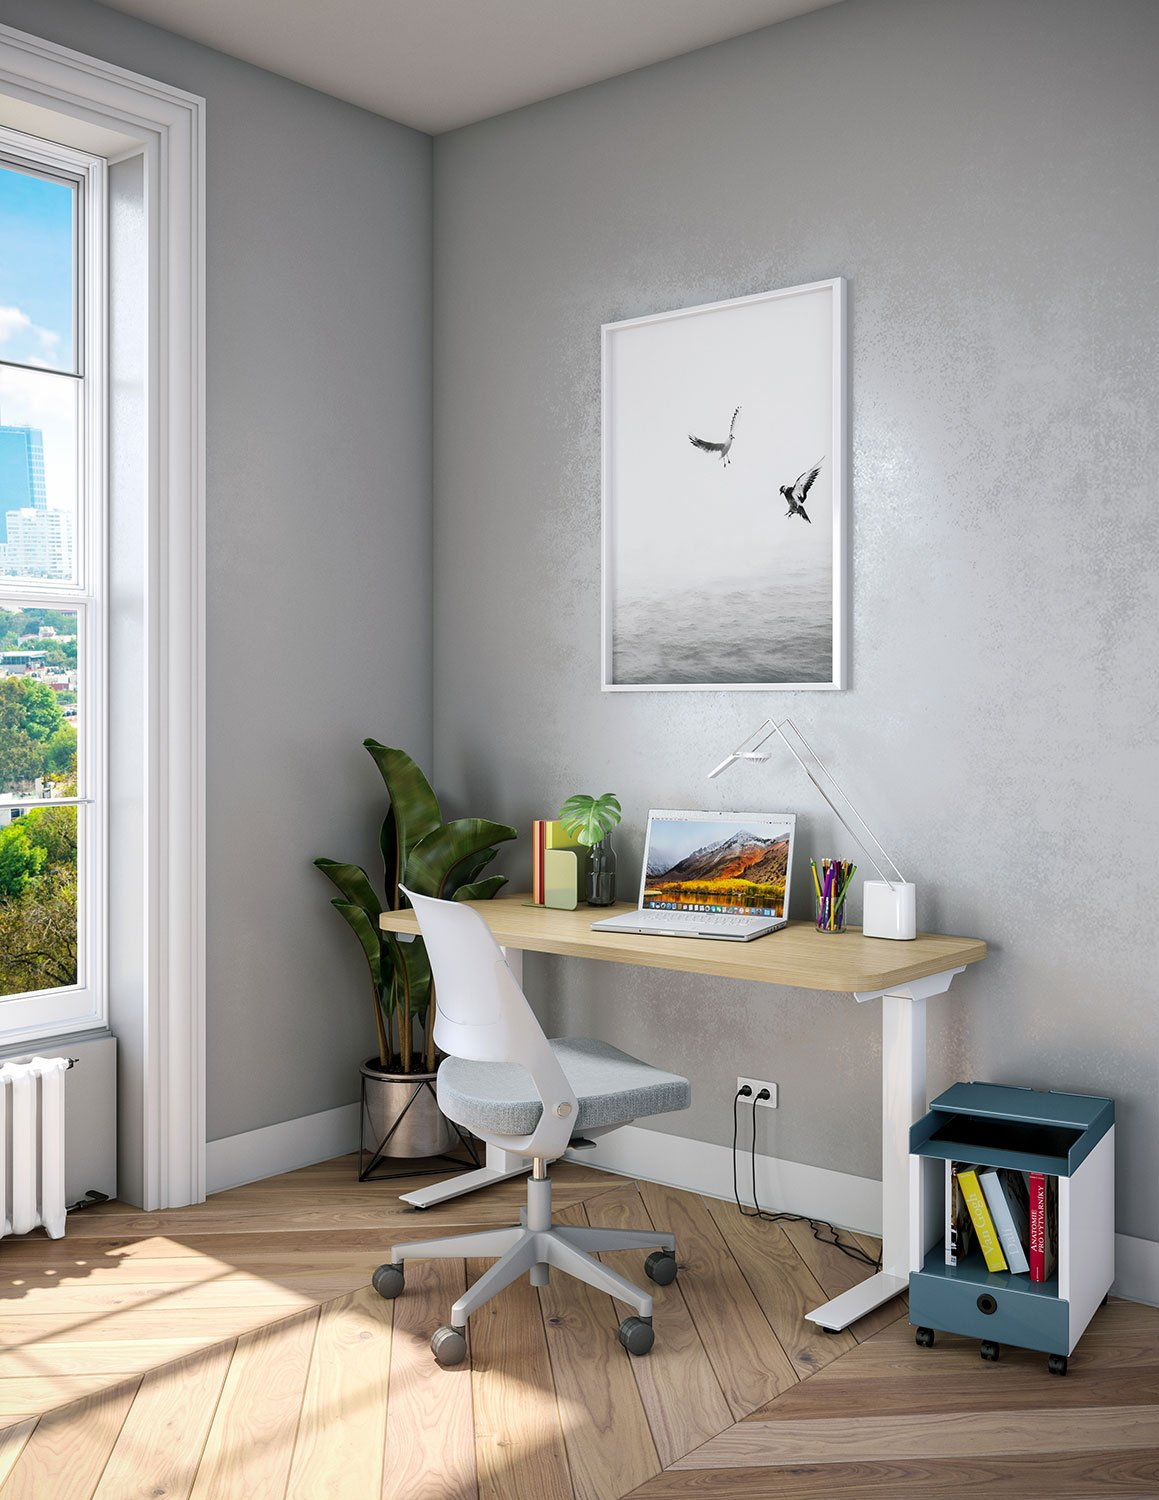 Hipso Height-Adjustable Desk with Ollo Light Task Chair and Muuto accessories Work from Home Inspiration from Knoll and Muuto